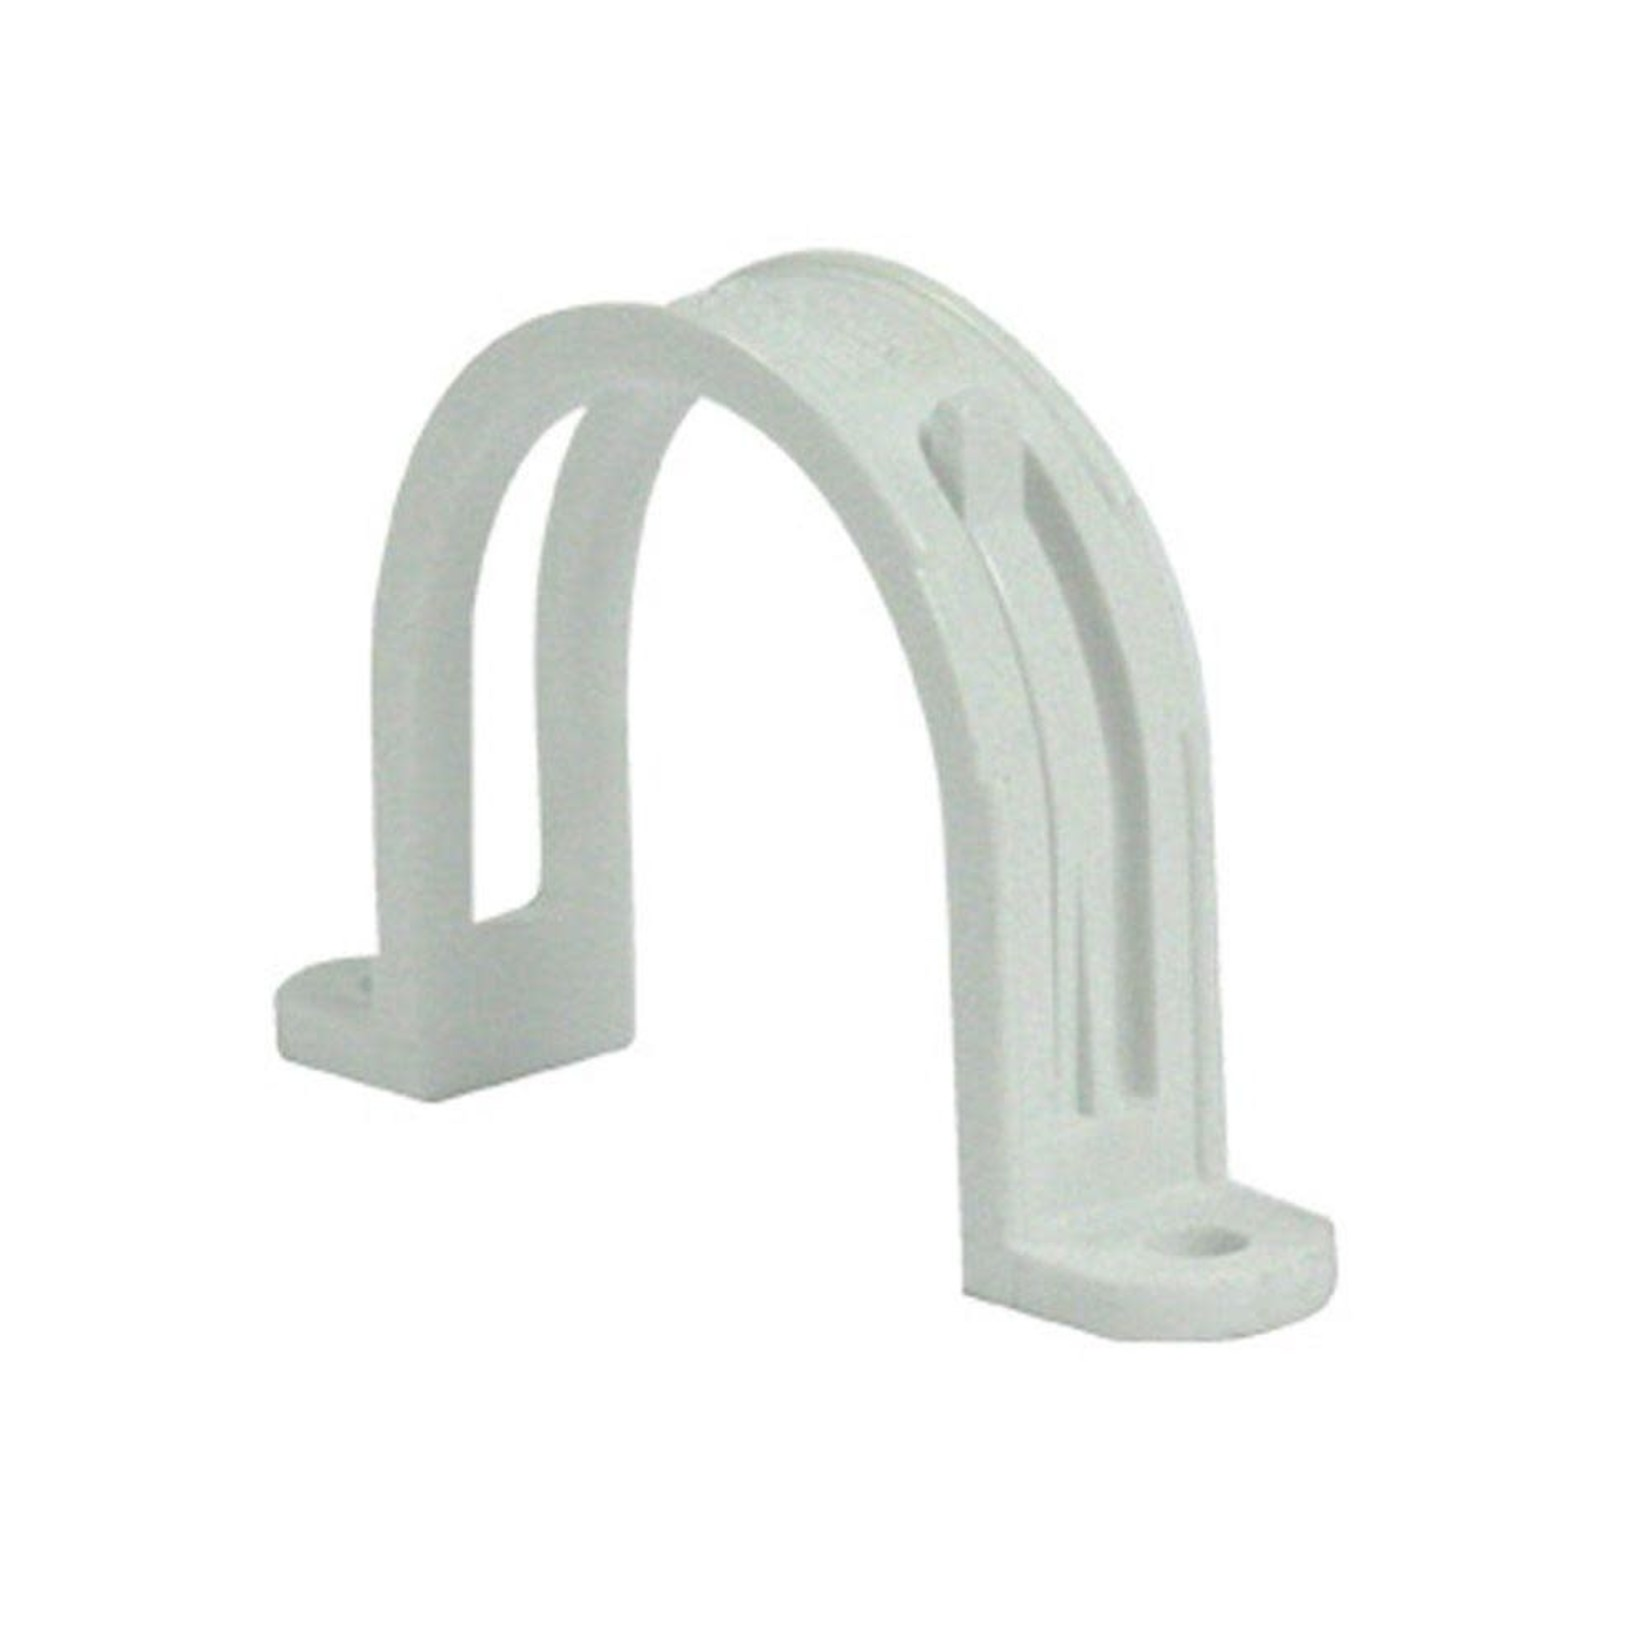 Vaculine Central Vacuum Pipe Hanger Clamp - (Box of 50)